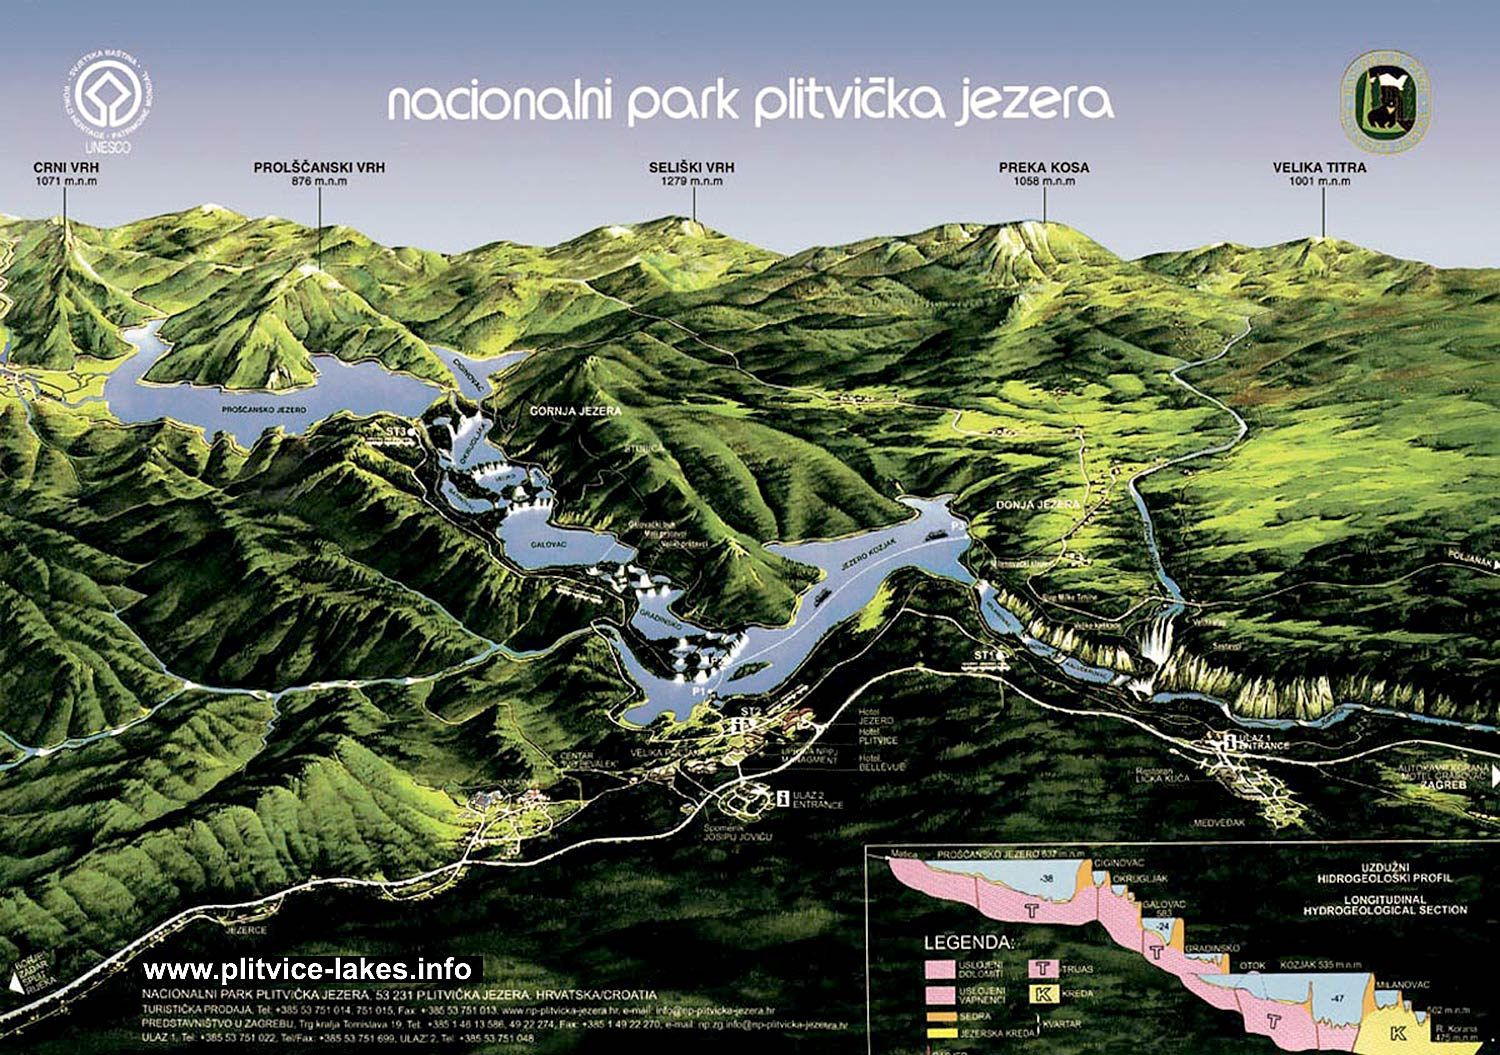 Visitor Map 3D of Plitvice Lakes National Park 2009  Plitvice